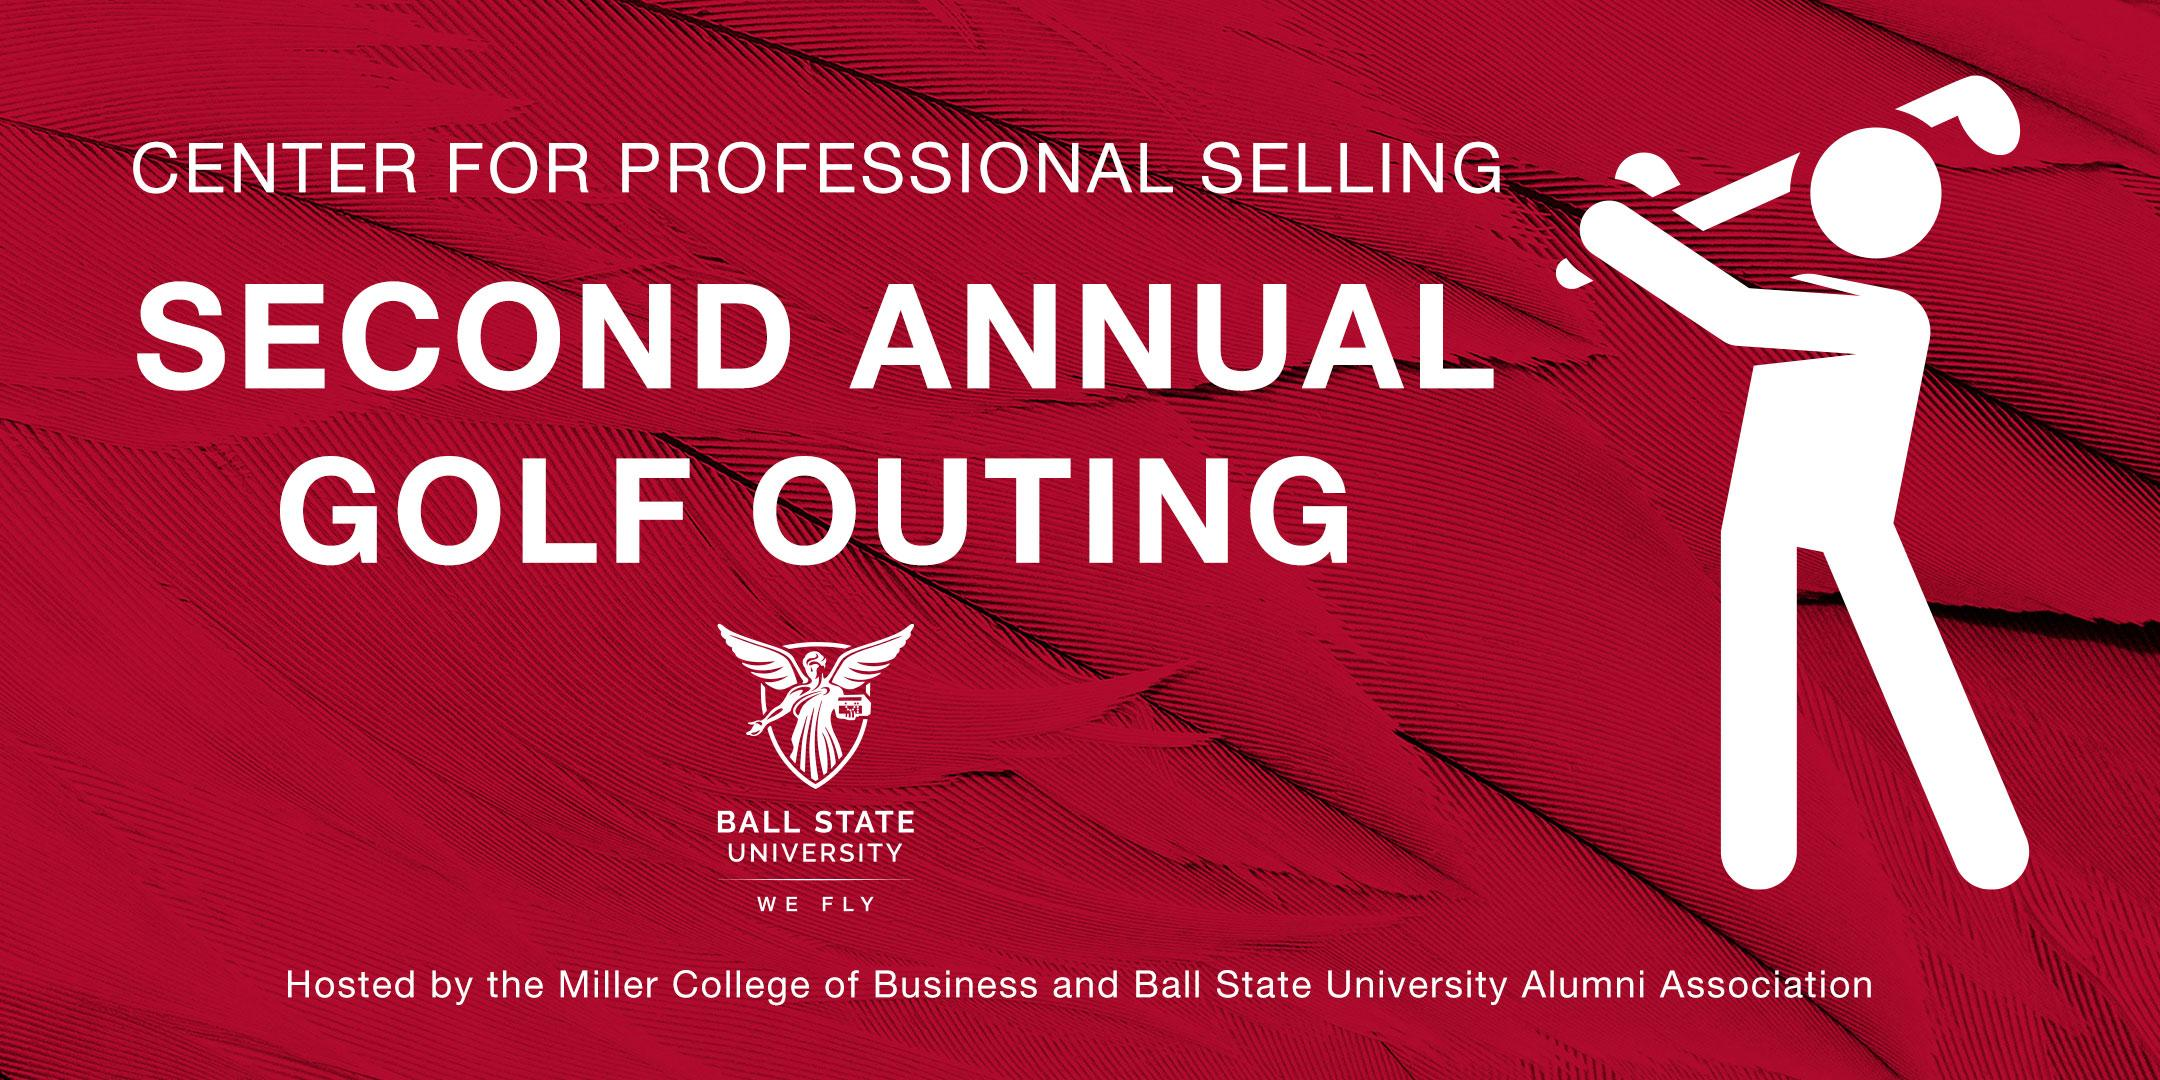 Center for Professional Selling Second Annual Golf Outing